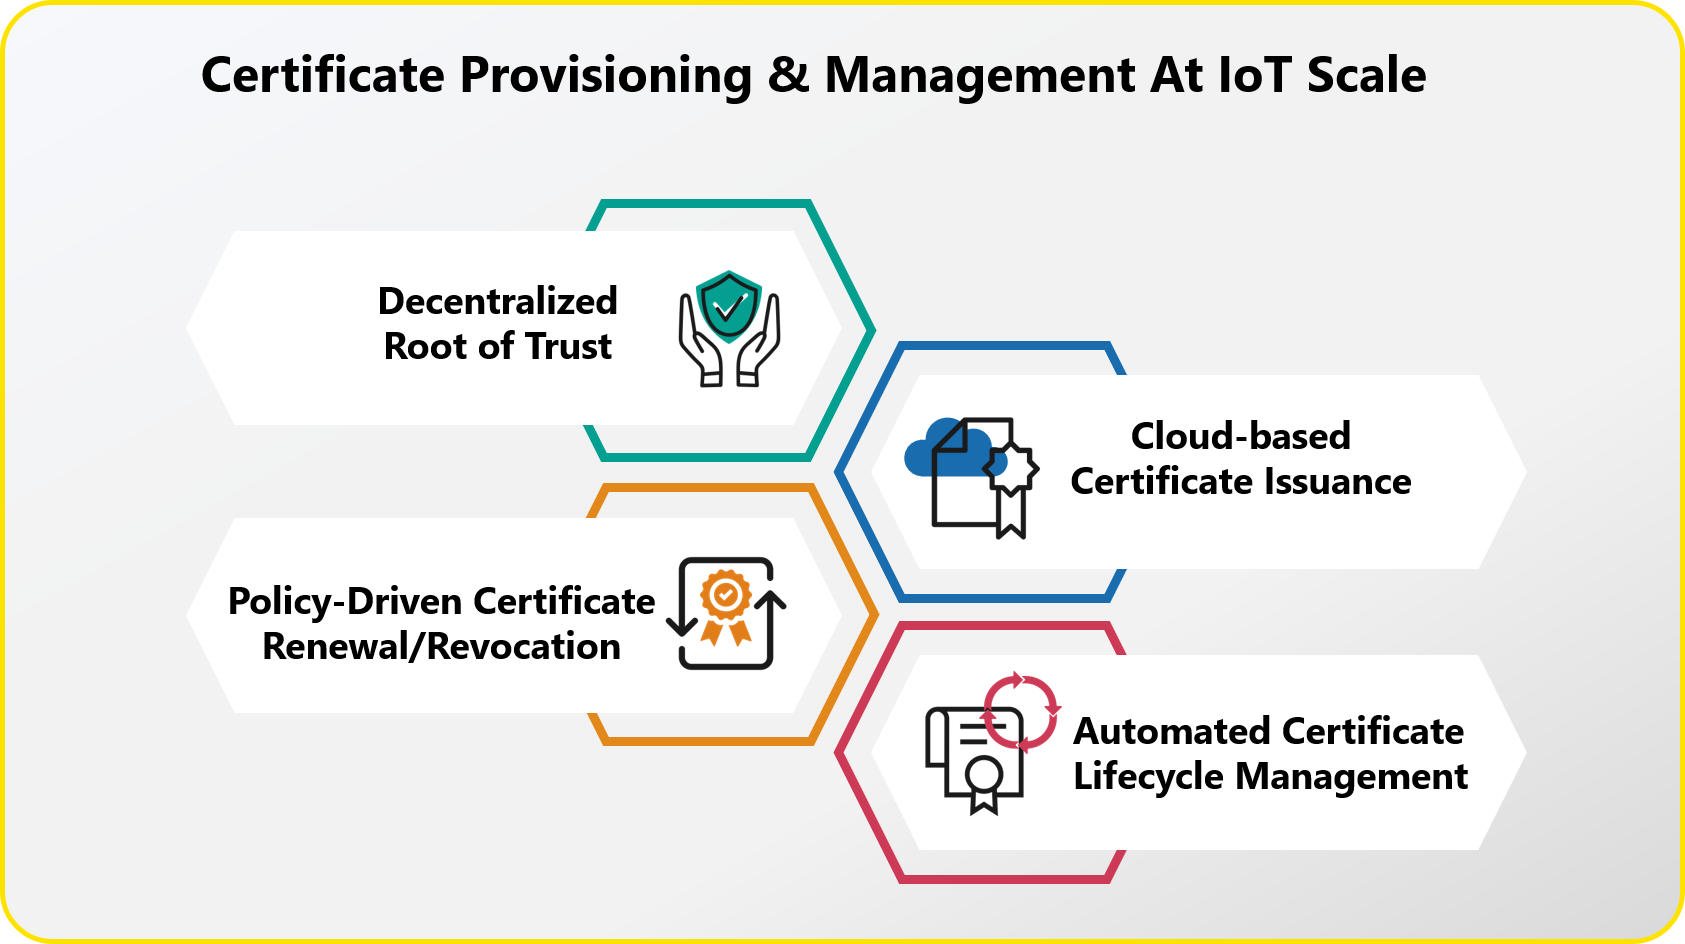 Certificate-Provisioning-and-Management-at-IoT-Scale